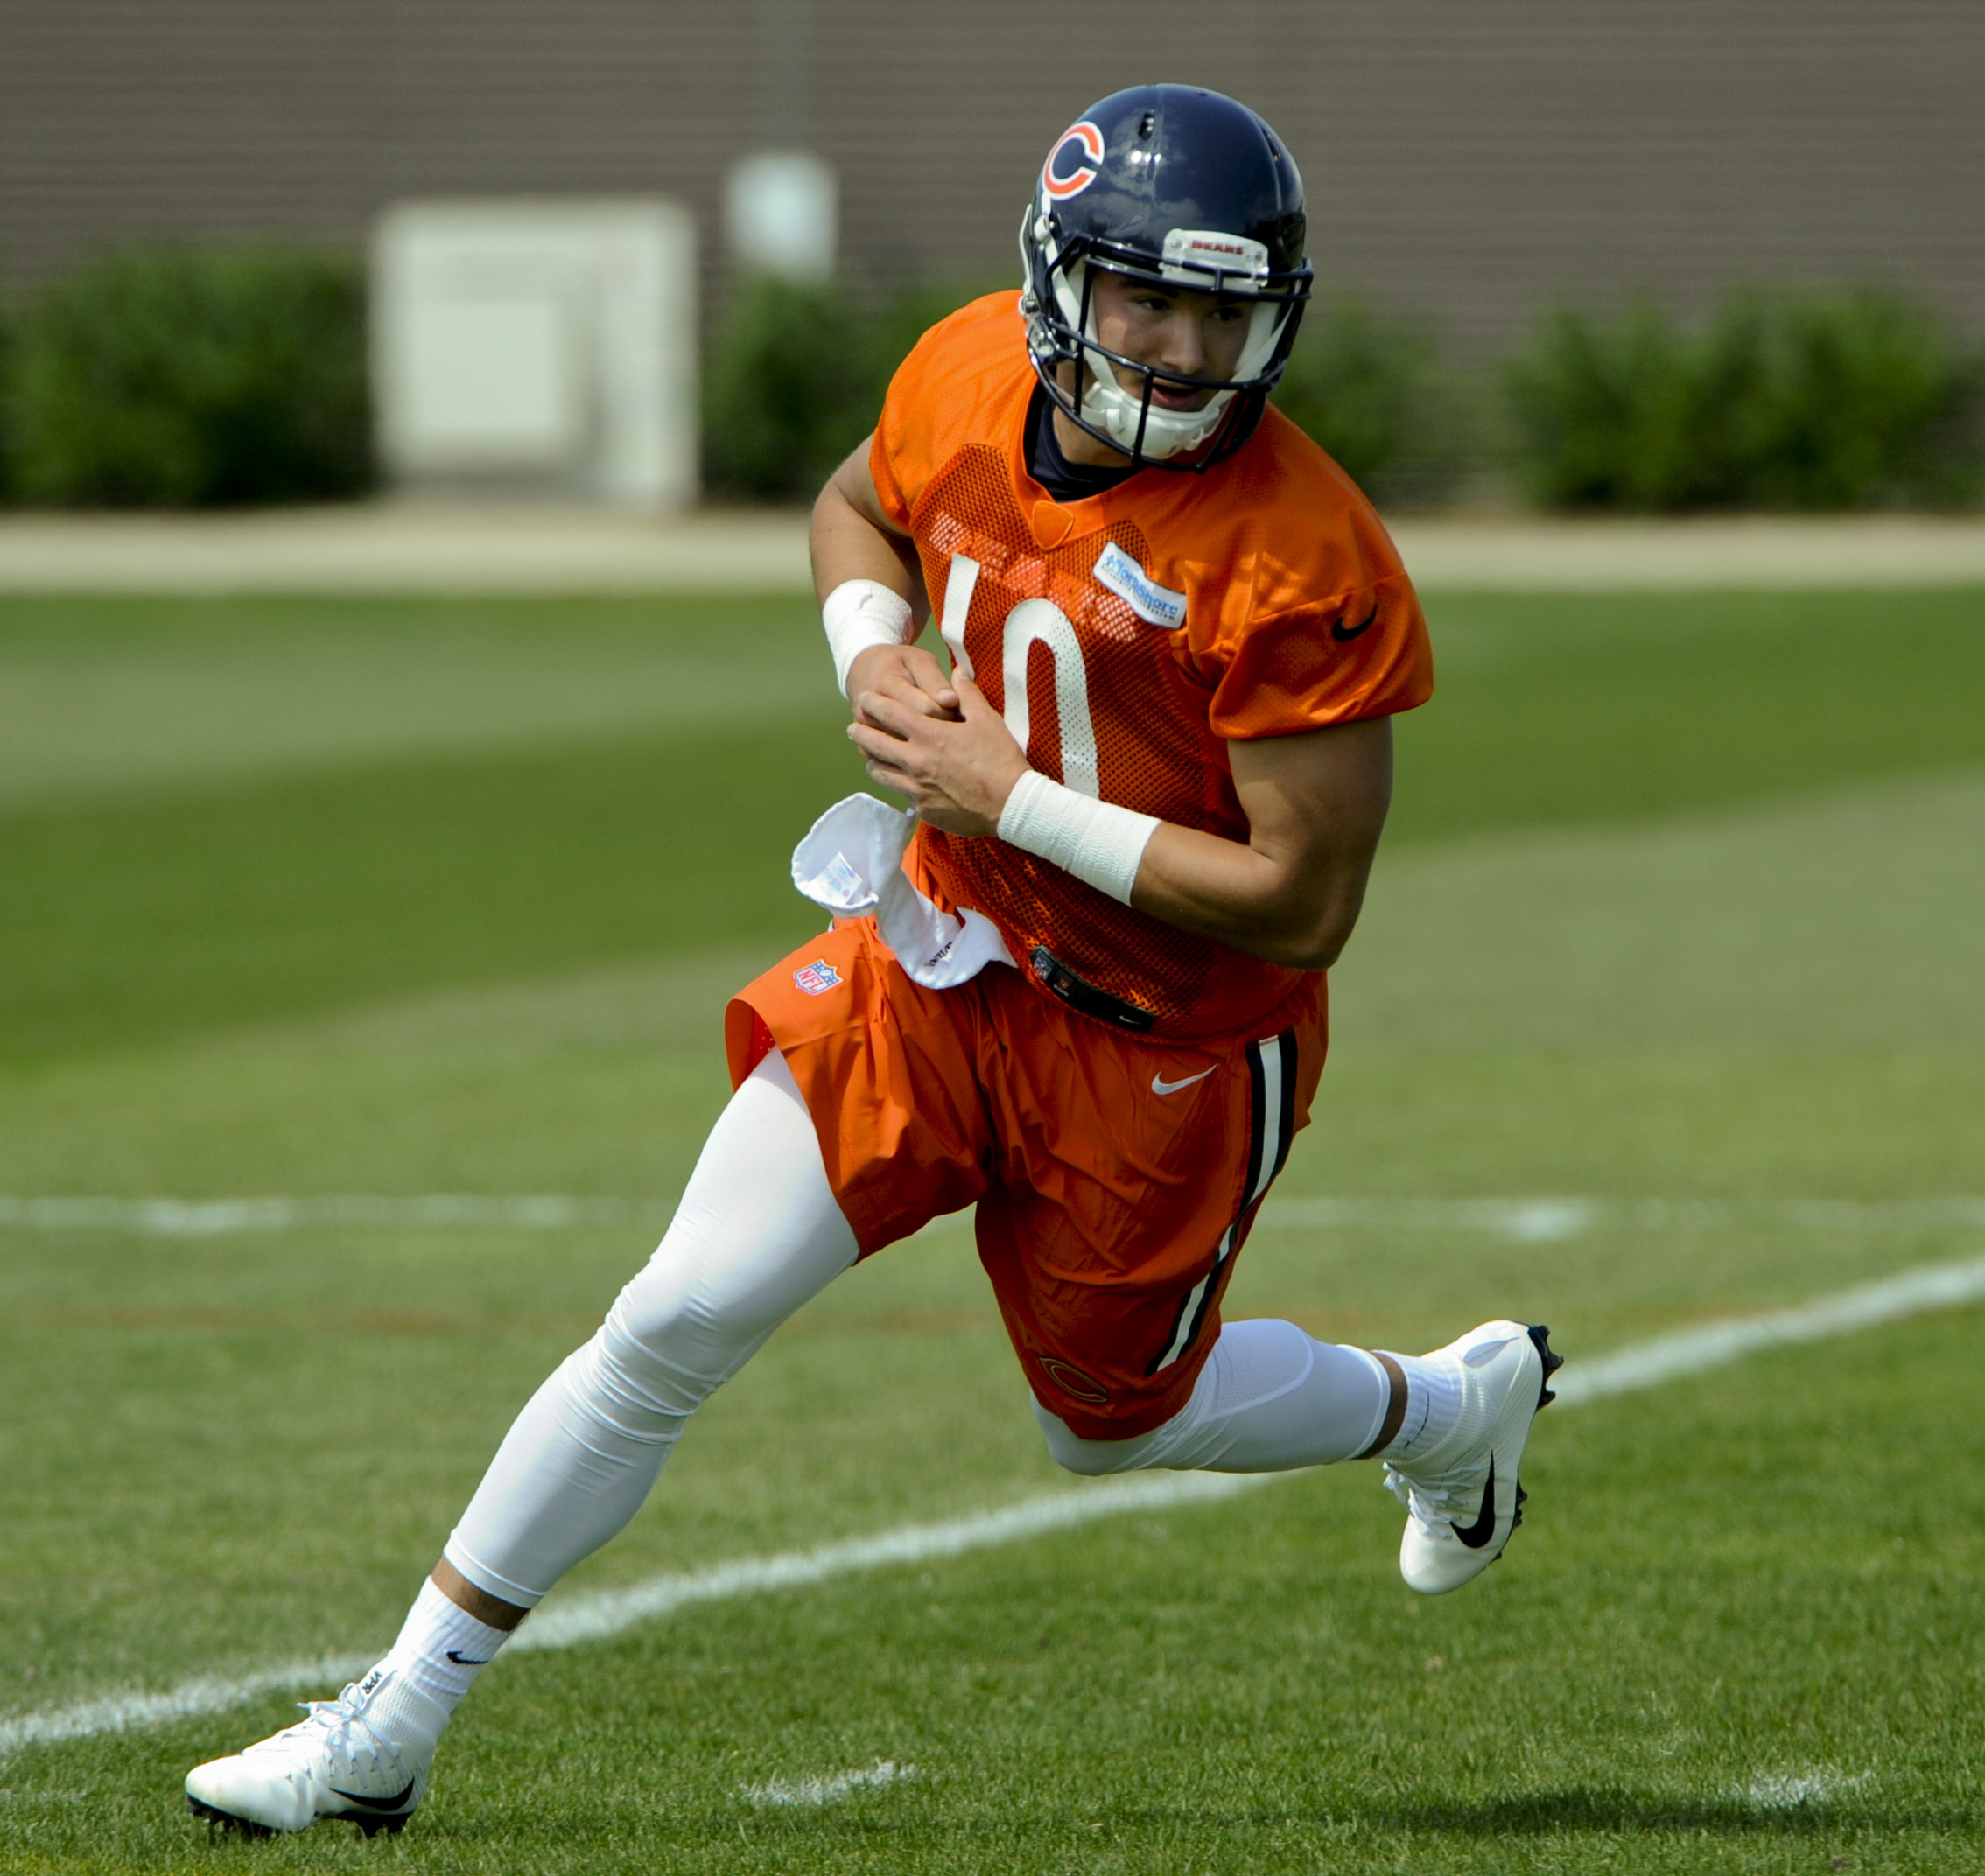 10062405-nfl-chicago-bears-rookie-minicamp-1